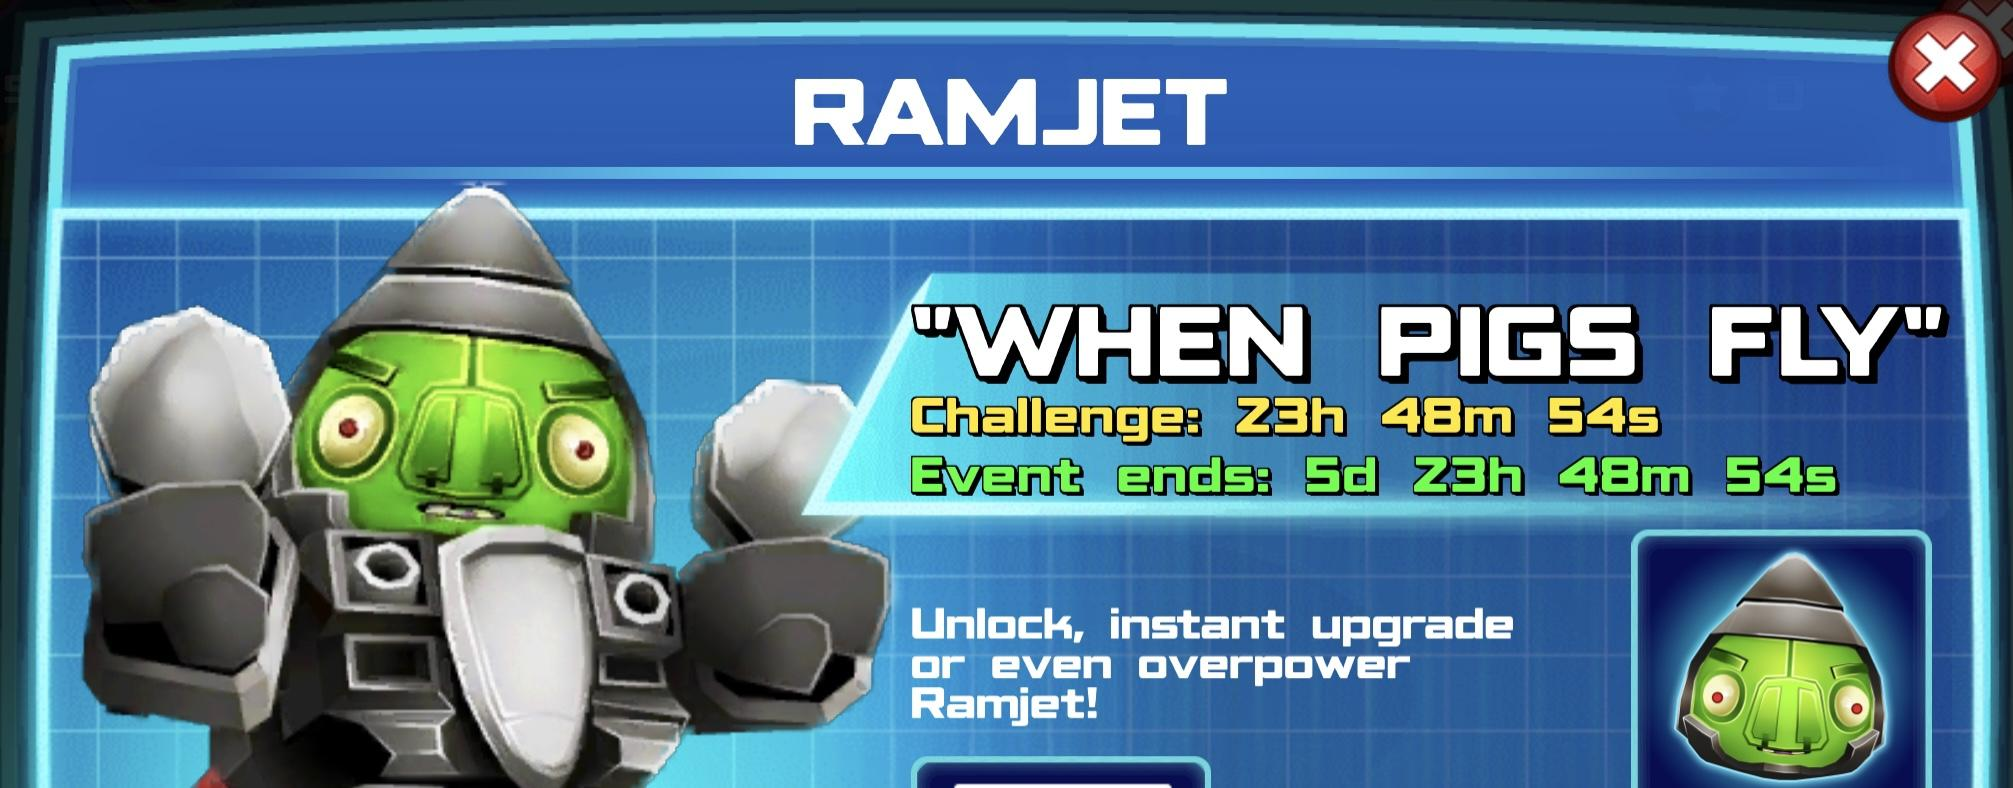 The event banner for Ramjet